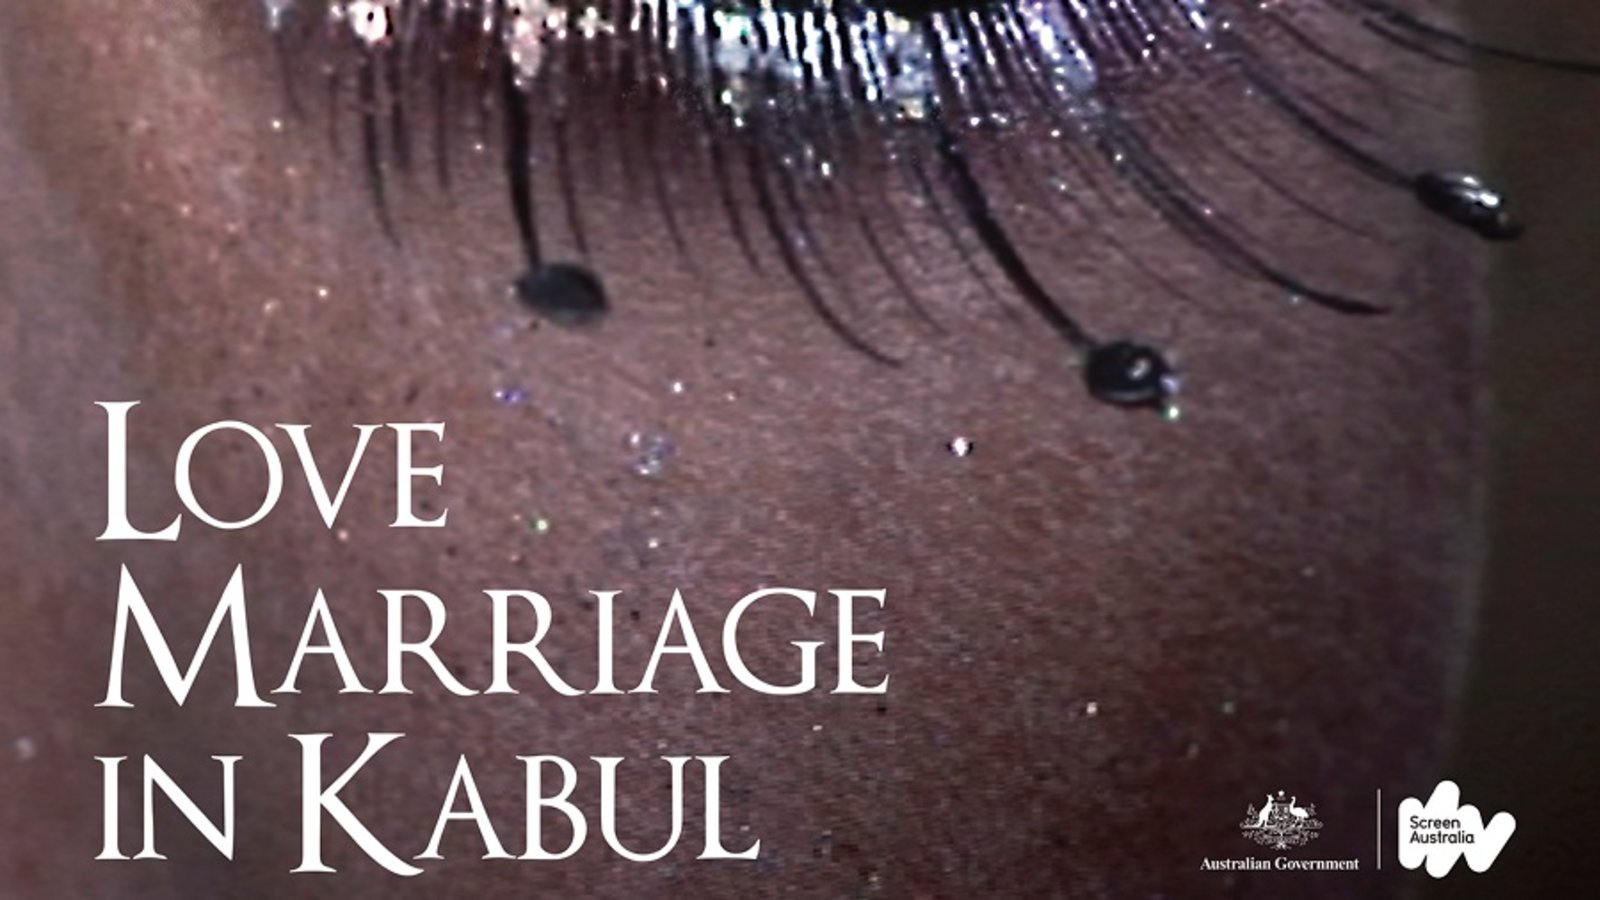 Love and Marriage in Kabul - Challenging Marital Traditions in Afghanistan